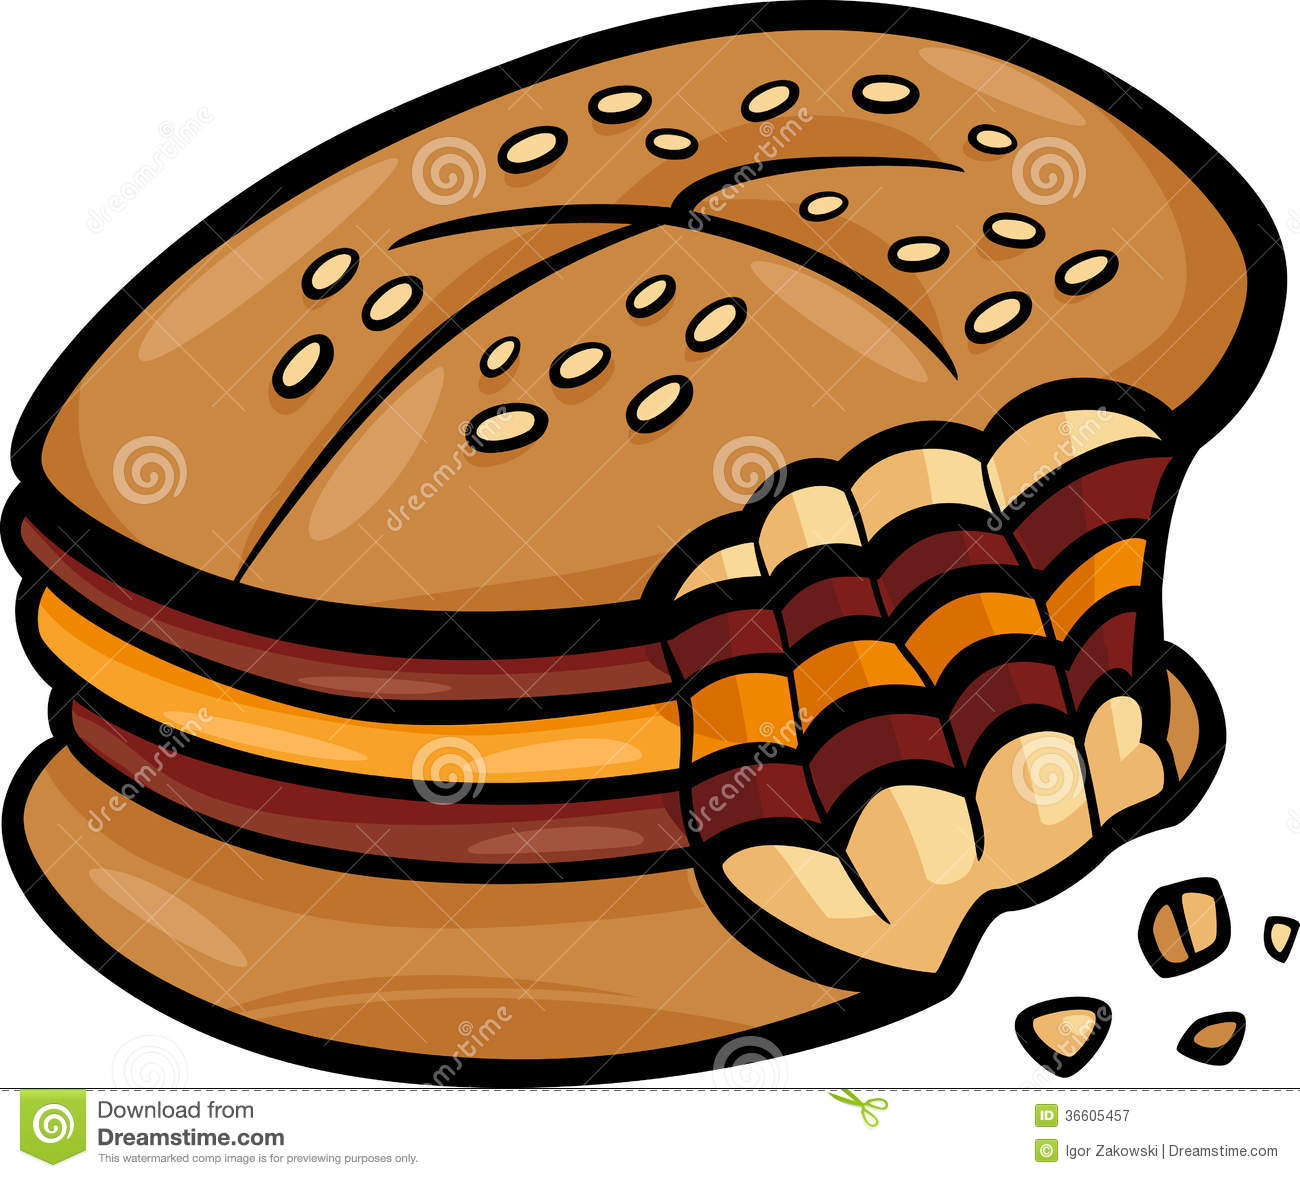 Bitten Cheeseburger Cartoon Clip Art Royalty Free Stock ...